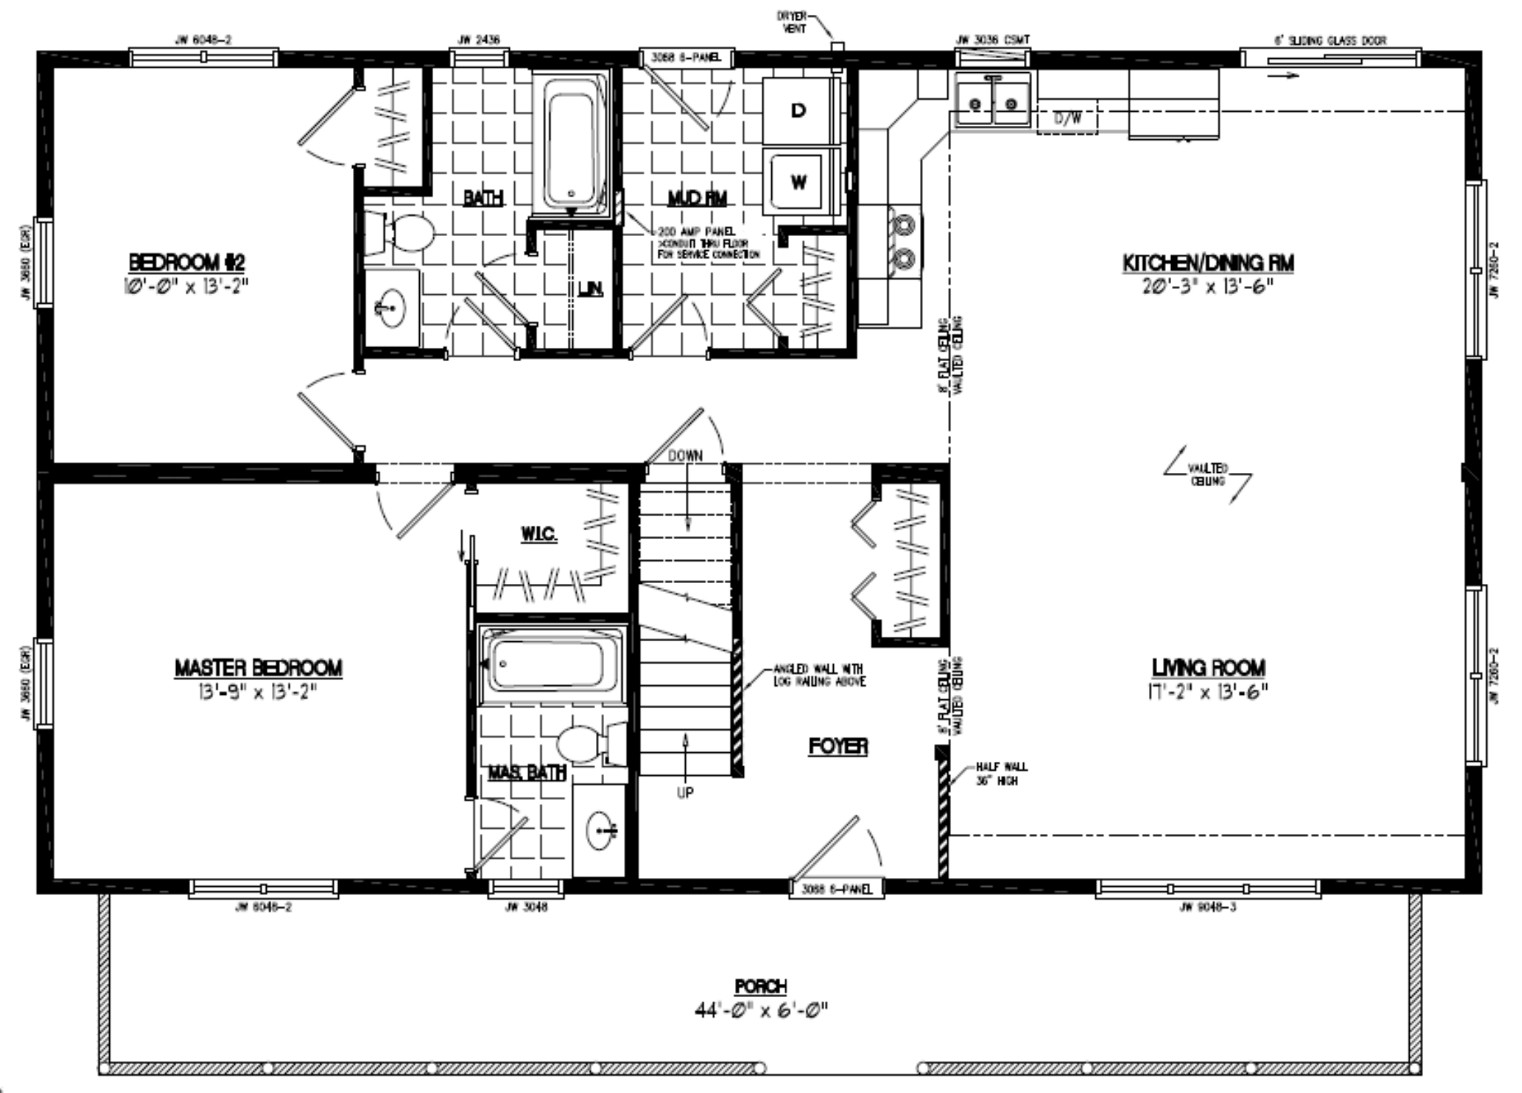 28x48 floor plans 1200 to 1399 sq ft manufactured home